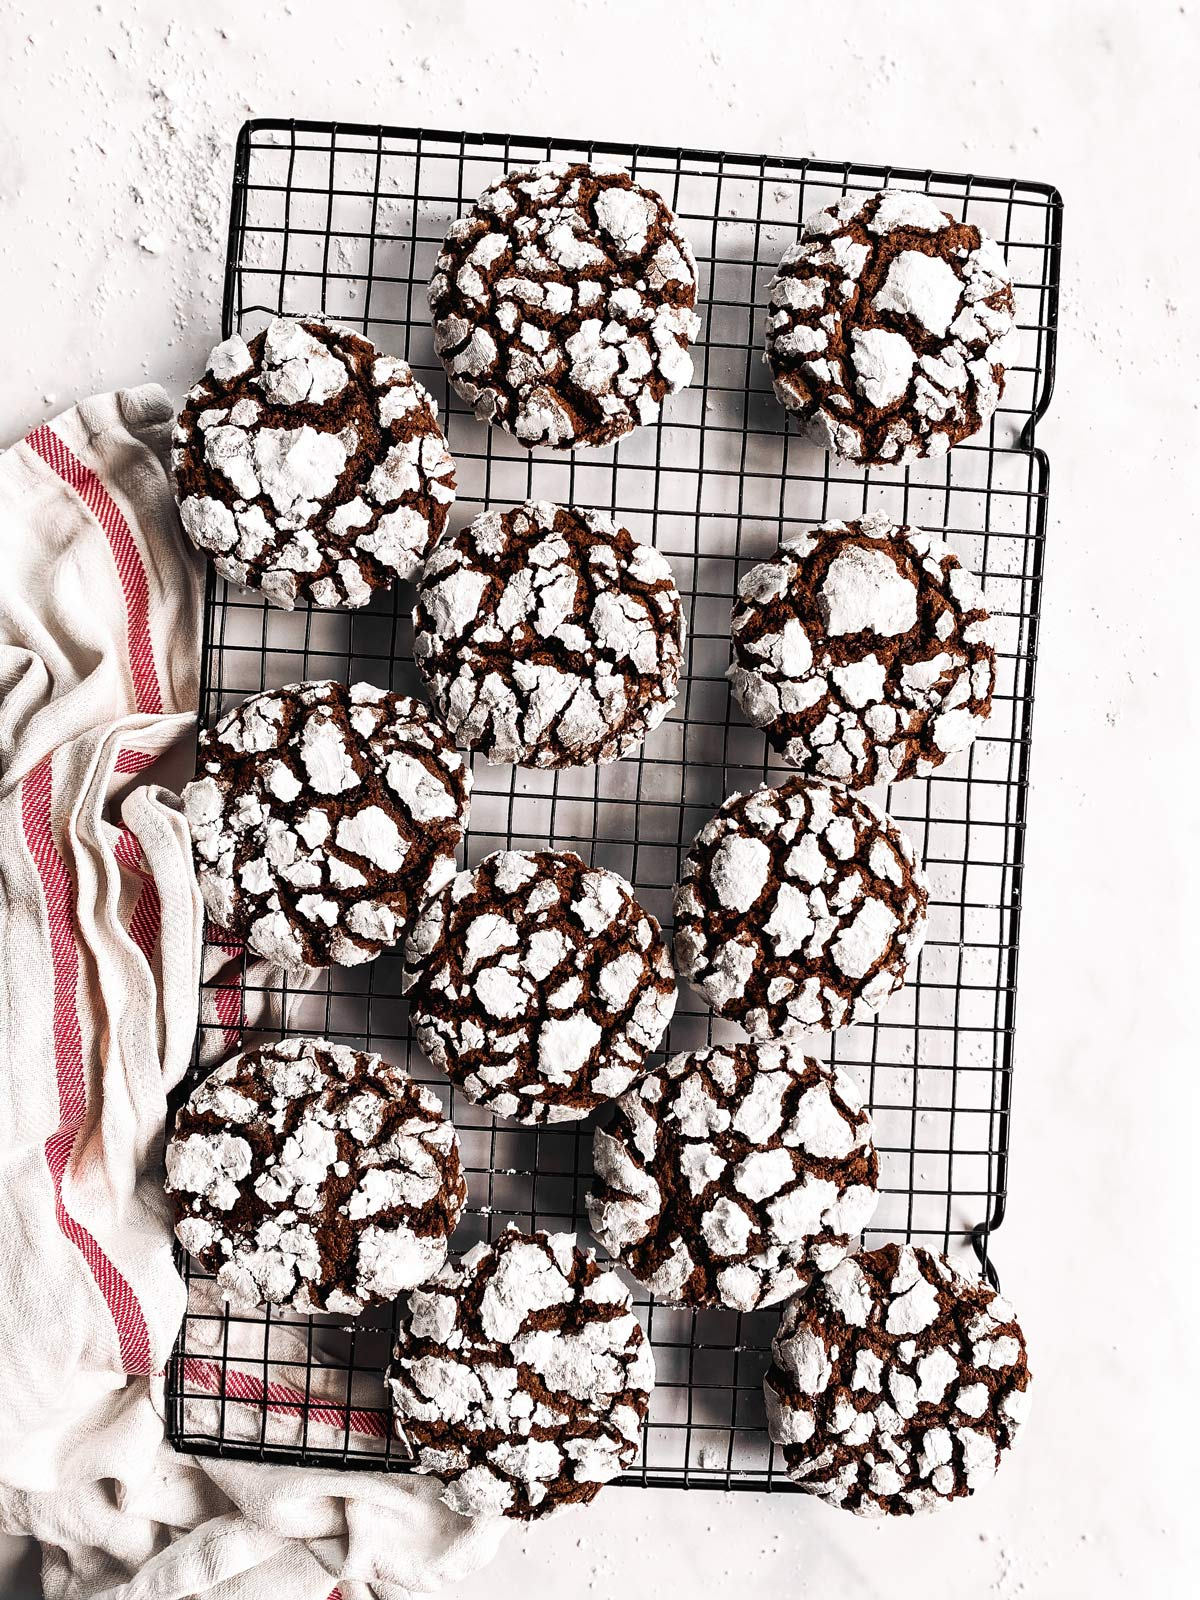 cooling rack with chocolate crinkle cookies